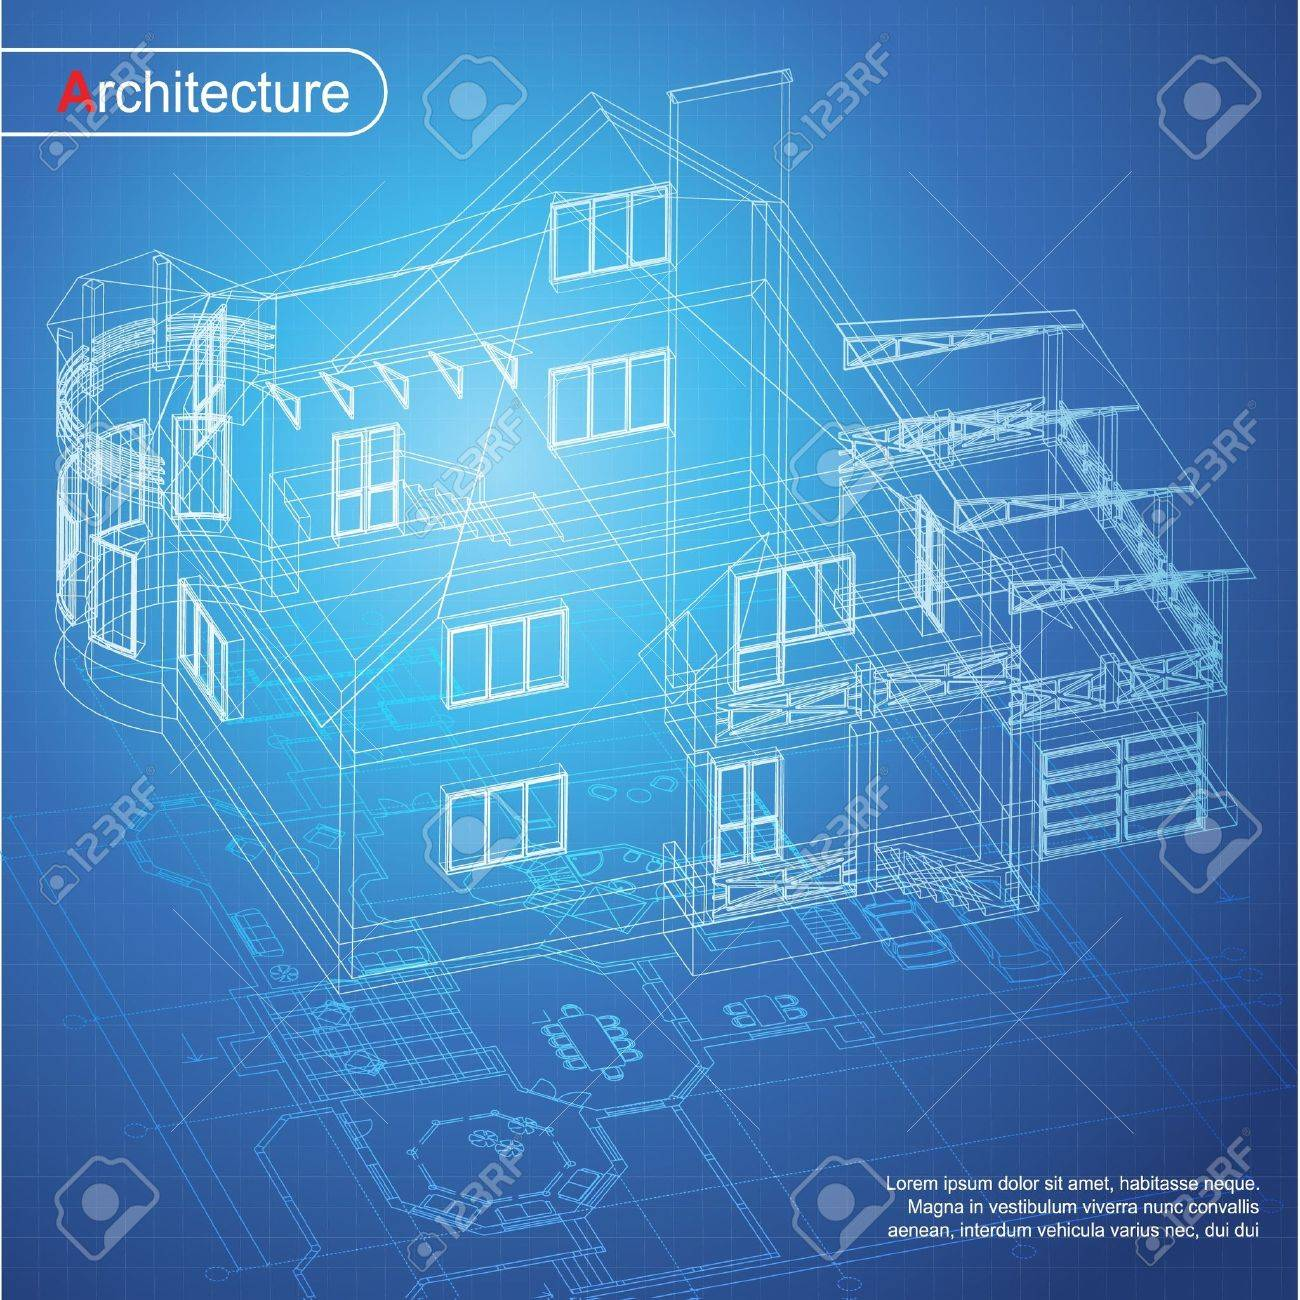 Urban blueprint architectural background part of architectural urban blueprint architectural background part of architectural project architectural plan technical project drawing malvernweather Choice Image